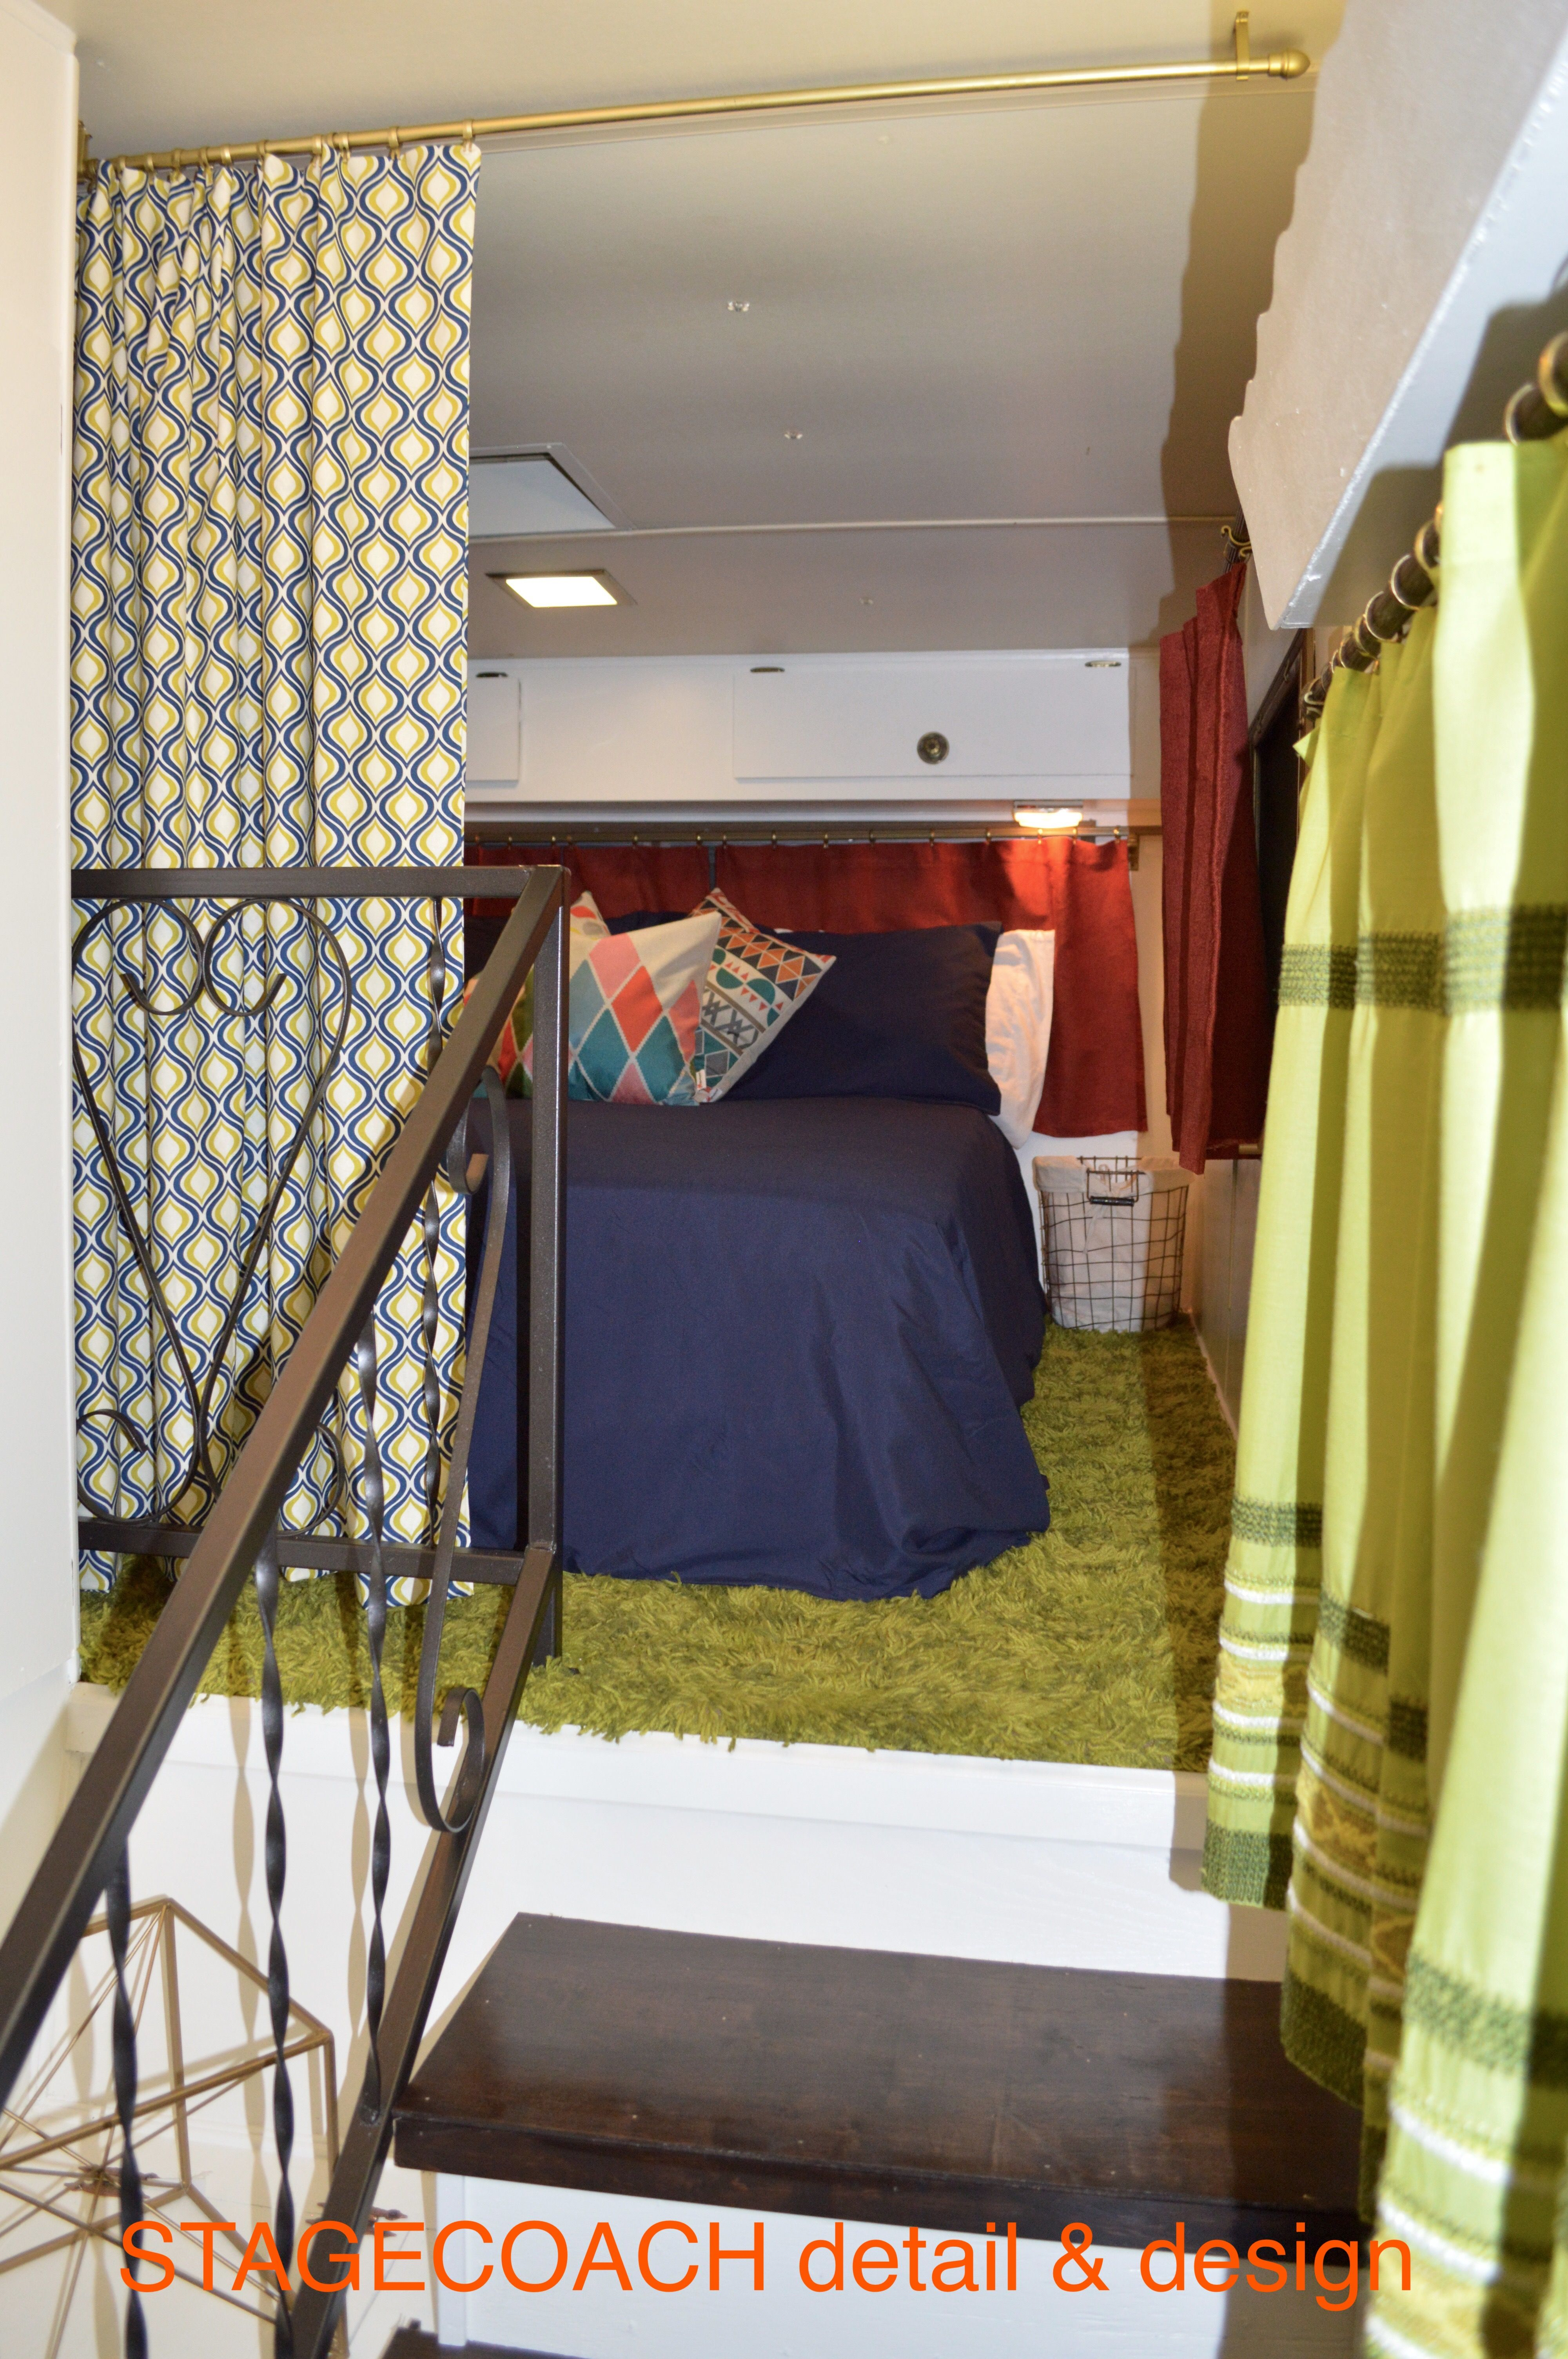 1972 Kountry Aire Fifth Wheel Vintage Travel Trailer Home Decor Vintage Travel Trailers Home